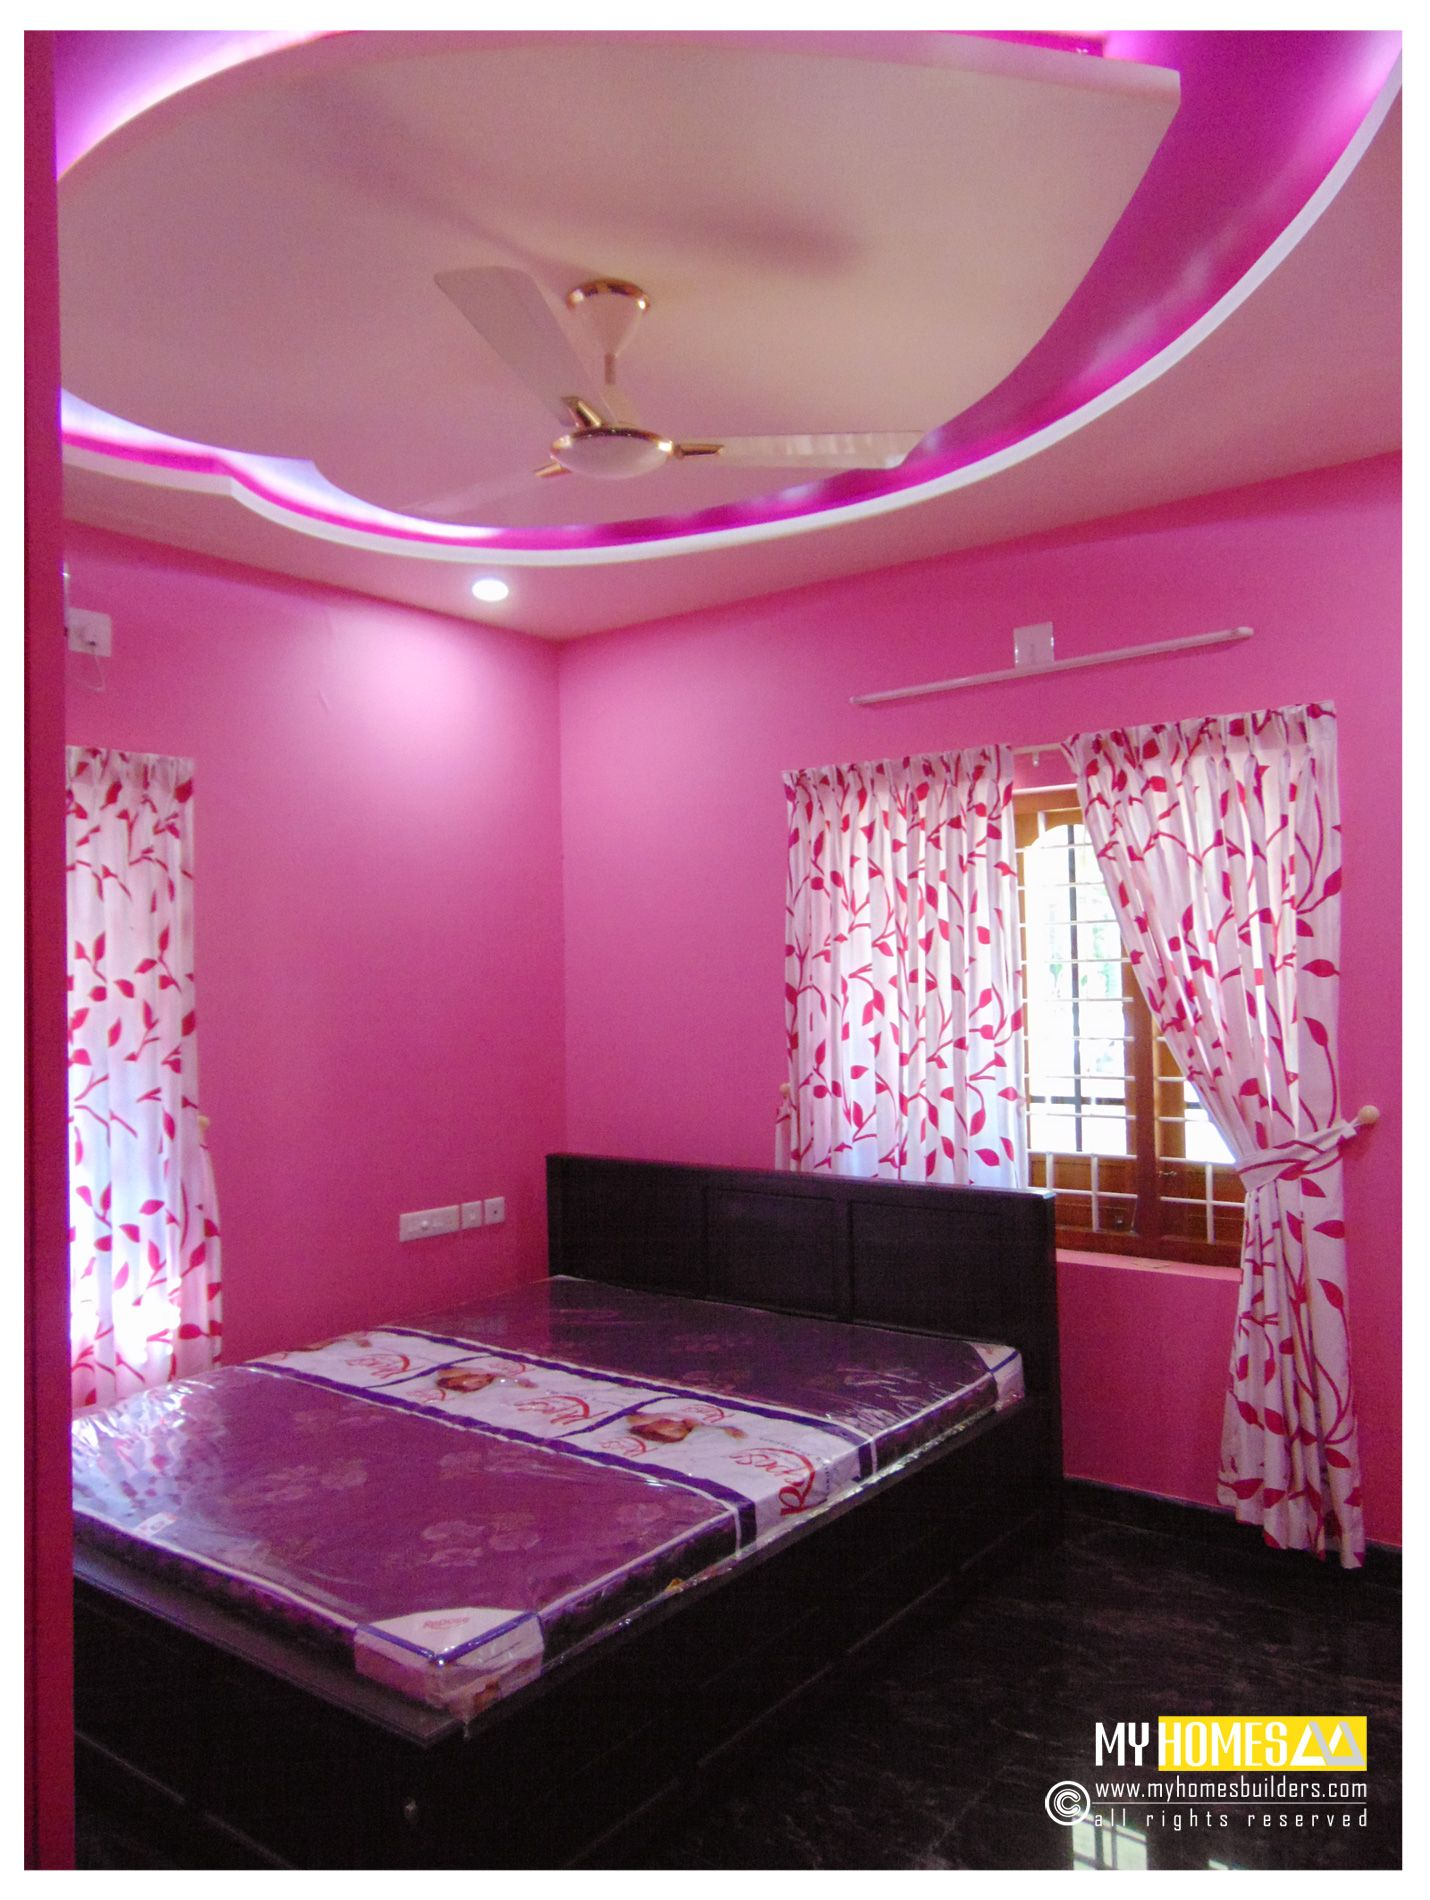 kerala bedroom interior designs best bed room interior designs for one of our client from thrissur